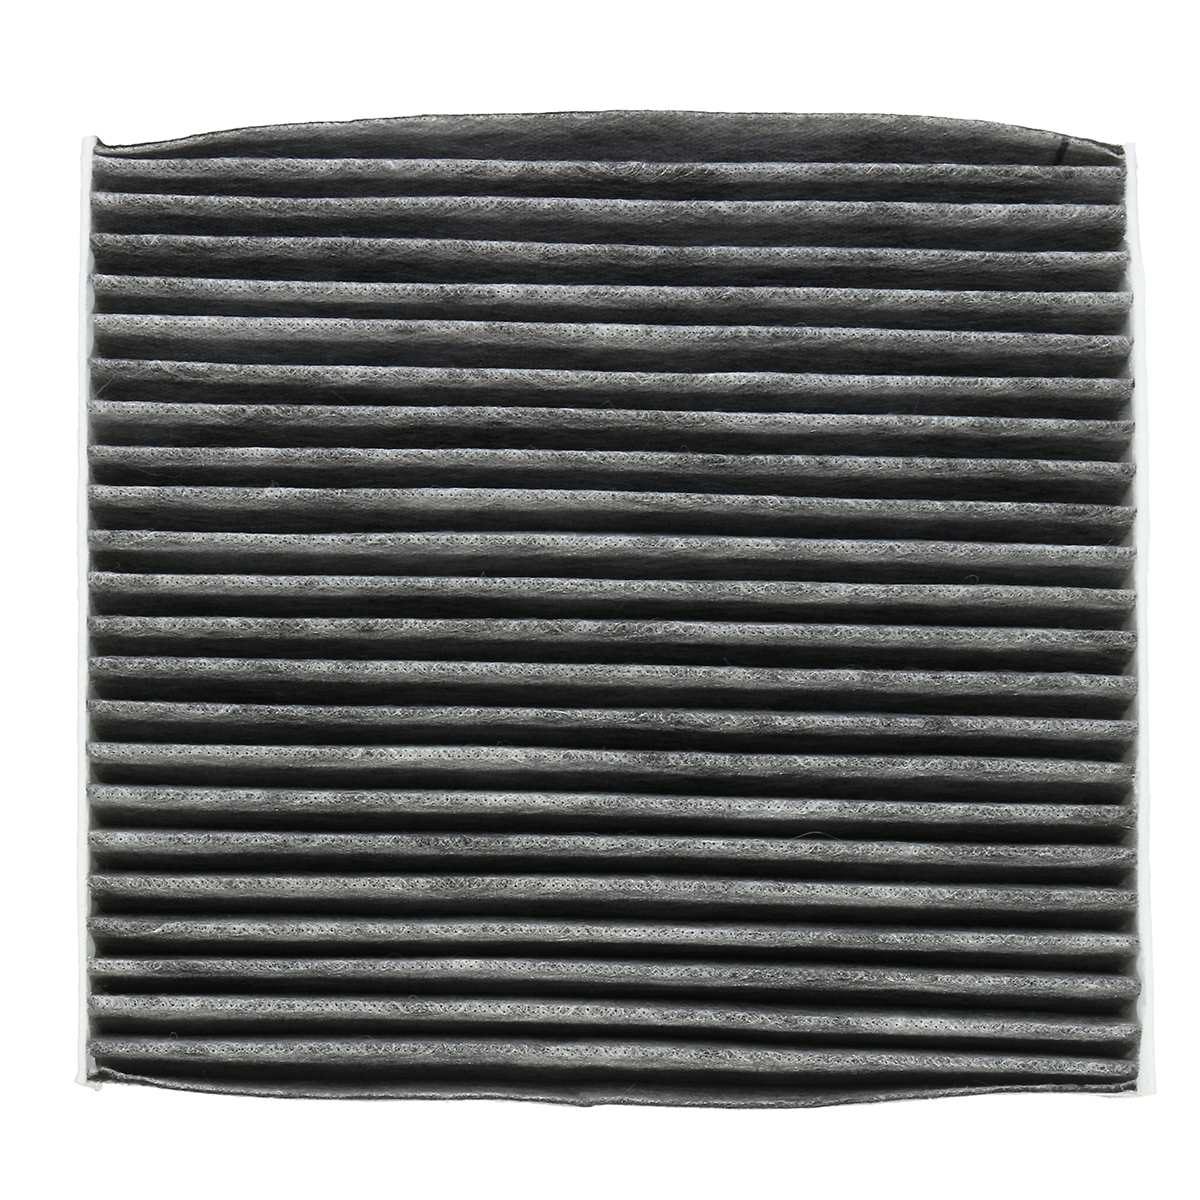 Aliexpress com buy cabin air filter for toyota camry rav4 yaris 87139 50060 adt32514 cf10285 cu1919 wp9290 87139 yzz16 21 2x19 4x2 8cm from reliable